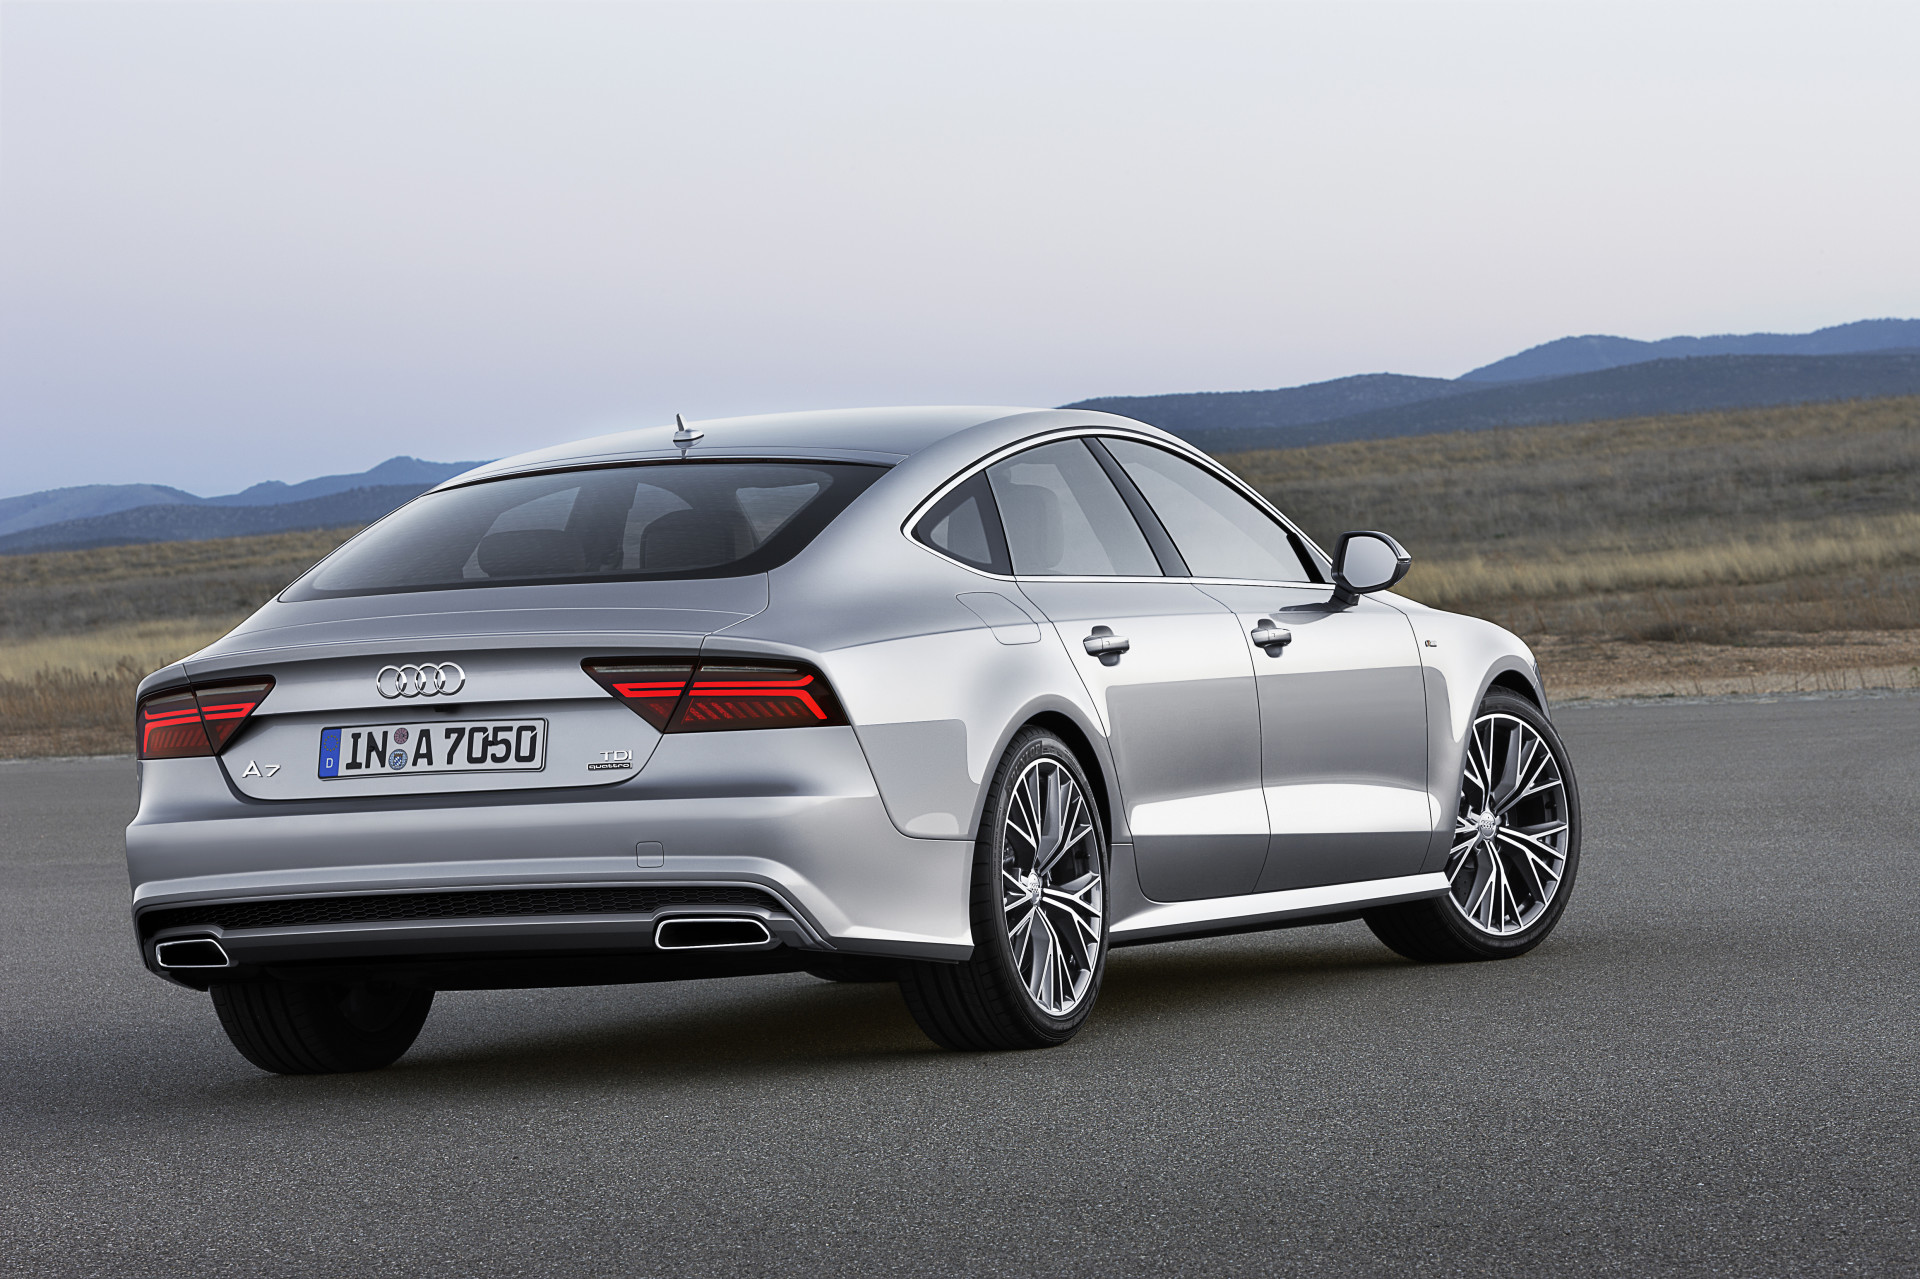 audi a7 sportback 2018 toutes les infos et photos officielles photo 7 l 39 argus. Black Bedroom Furniture Sets. Home Design Ideas